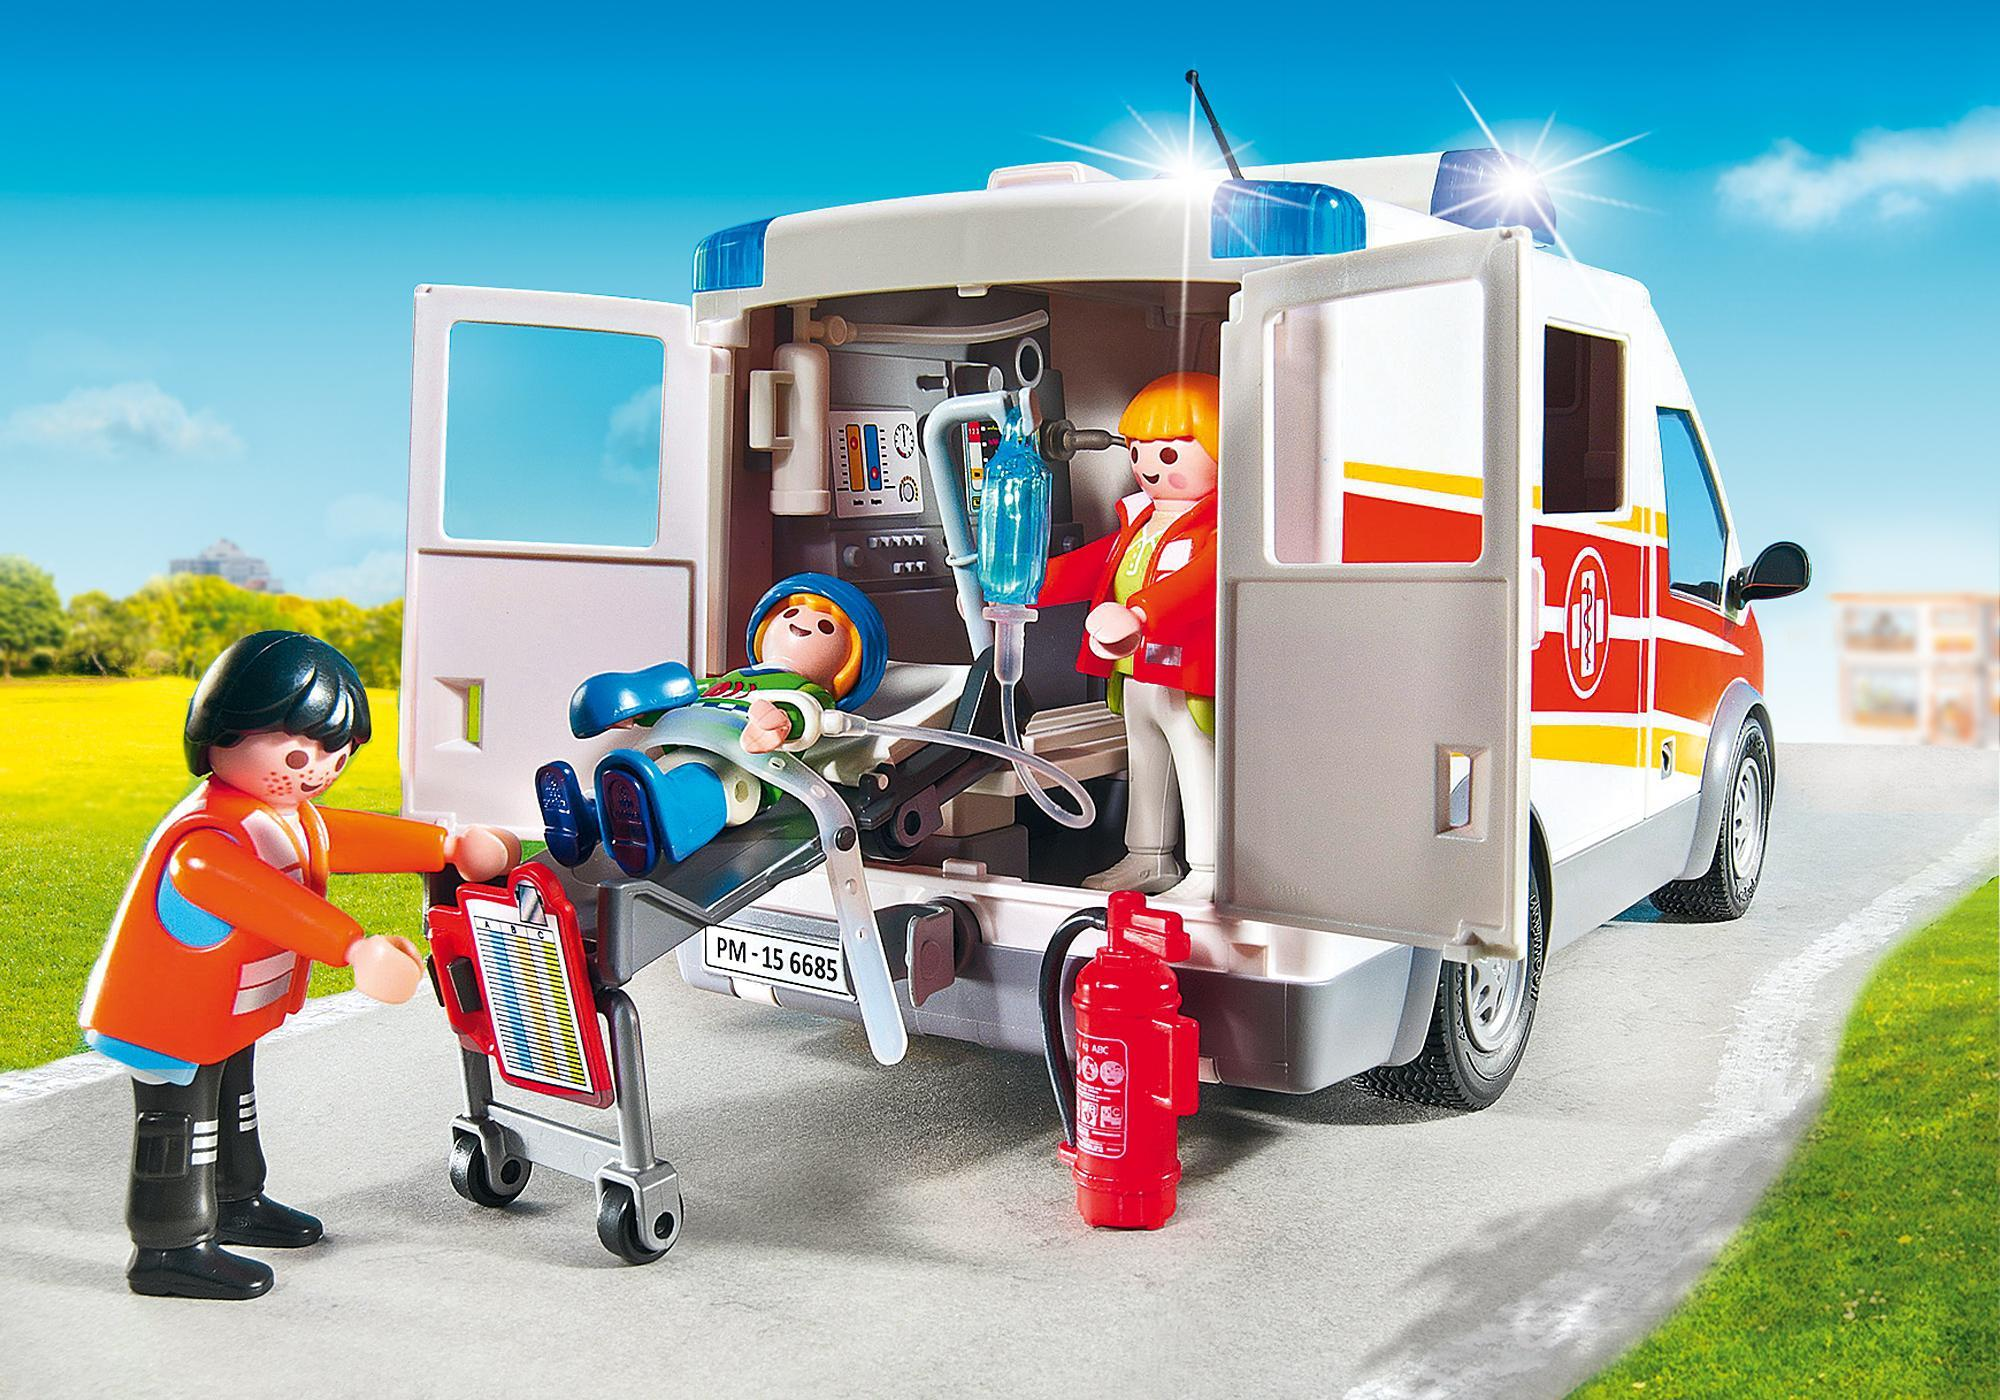 http://media.playmobil.com/i/playmobil/6685_product_extra2/Ambulancia con Luces y Sonido